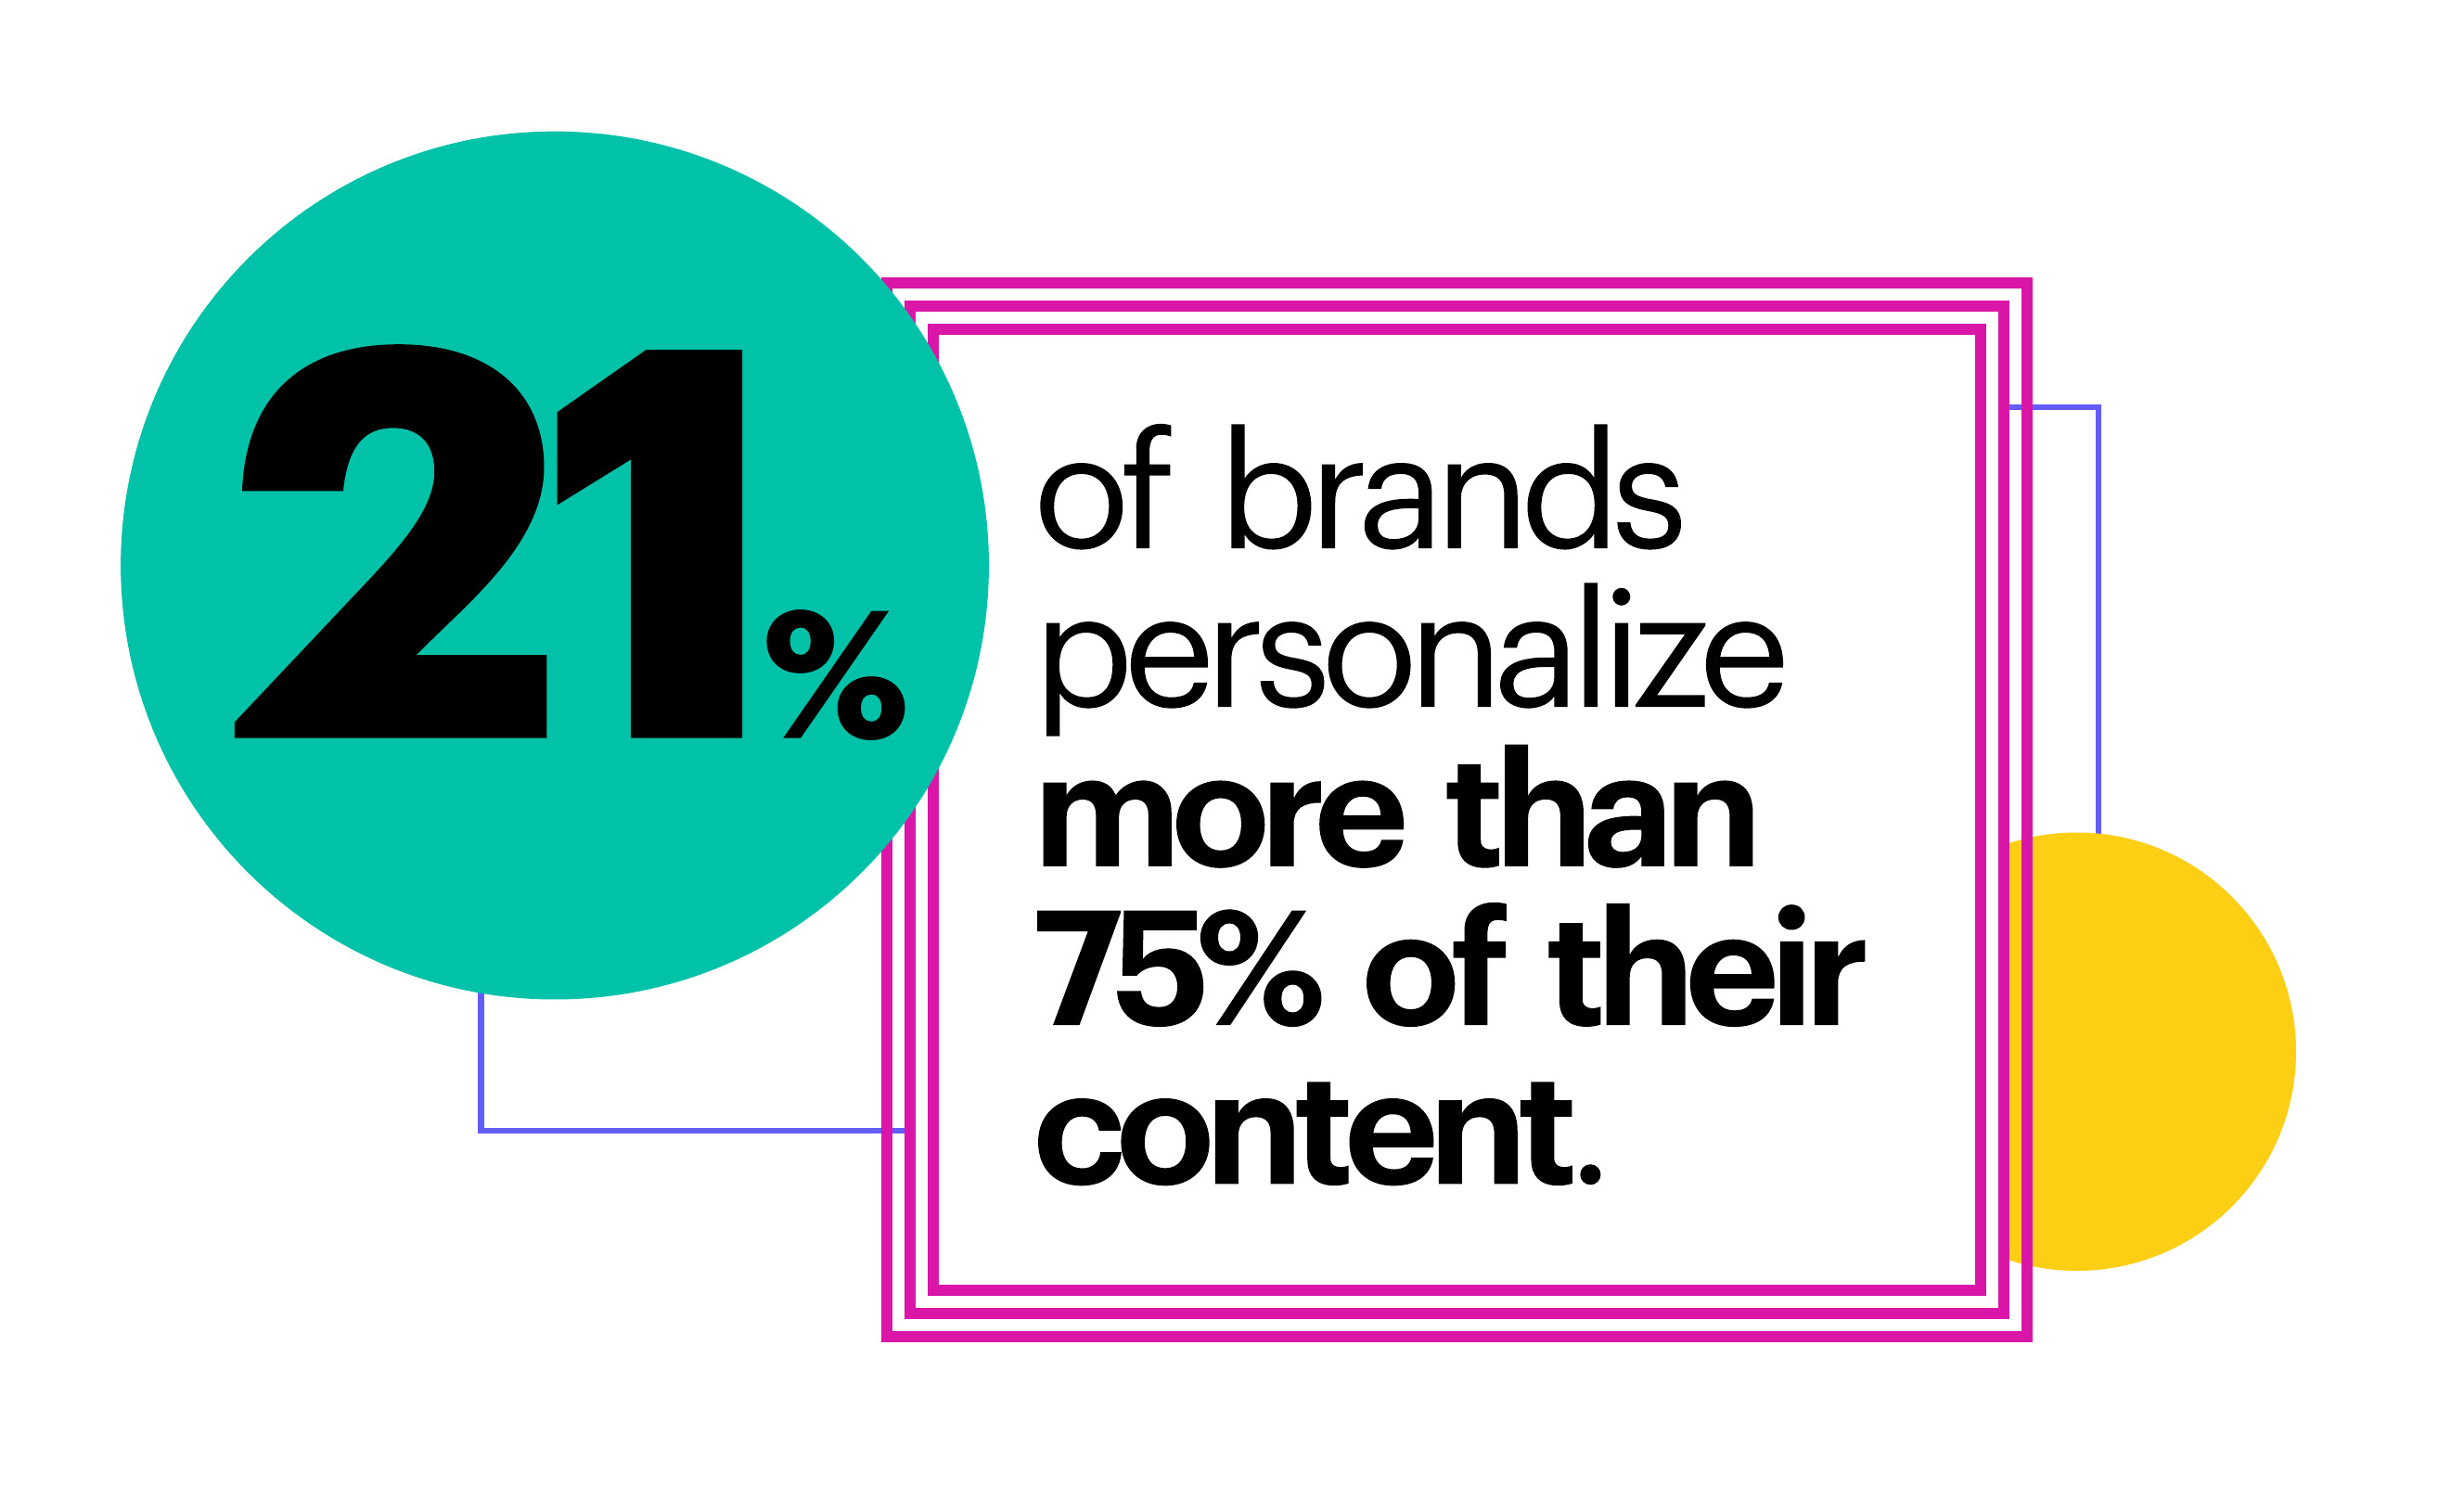 21% of brands personalize more than 75% of their content